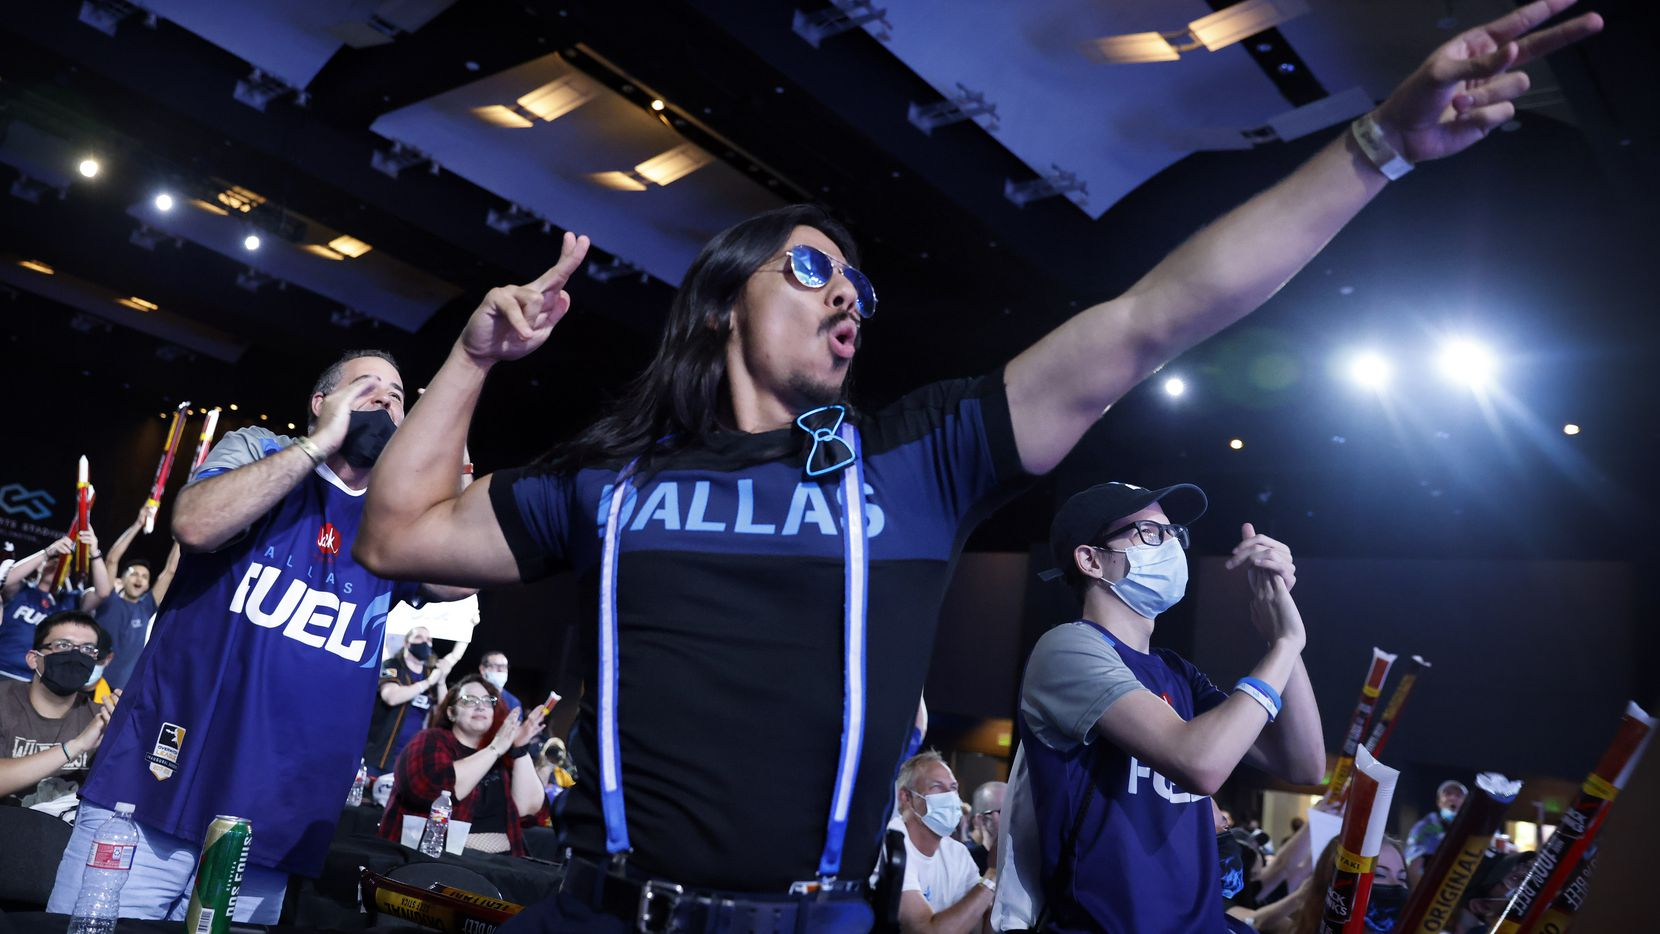 Dallas Fuel fans cheer player Sp9rk1e at the completion of his live winning interview. The Fuel defeated the Houston Outlaws in their Overwatch League match at Esports Stadium Arlington Friday, July 9, 2021. They won The Battle for Texas, 3-0. It was the first in-person live competition for fans in over a year. Houston competed from their hometown.